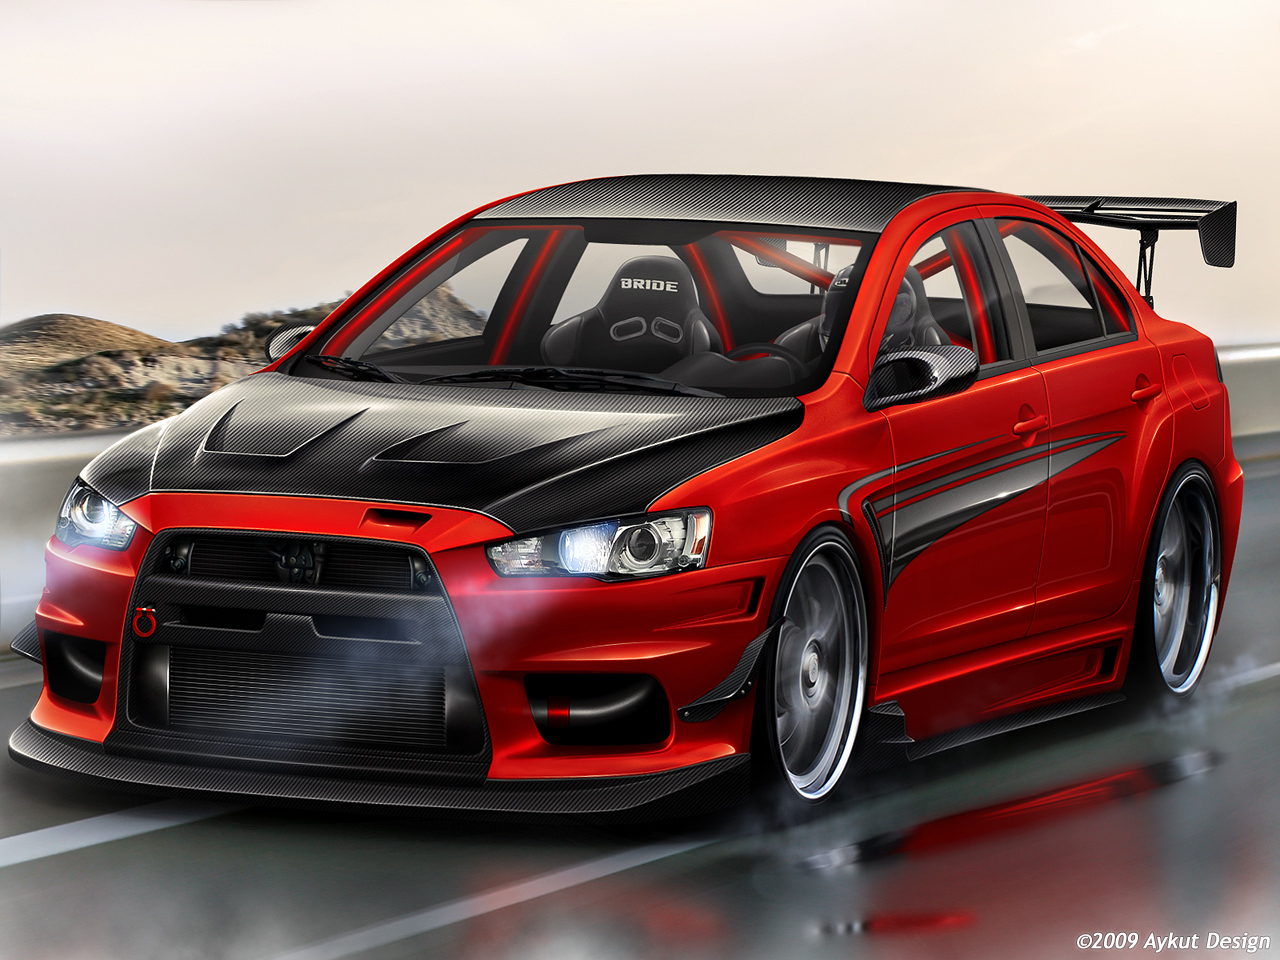 mitsubishi lancer evo 10 photos news reviews specs car listings. Black Bedroom Furniture Sets. Home Design Ideas